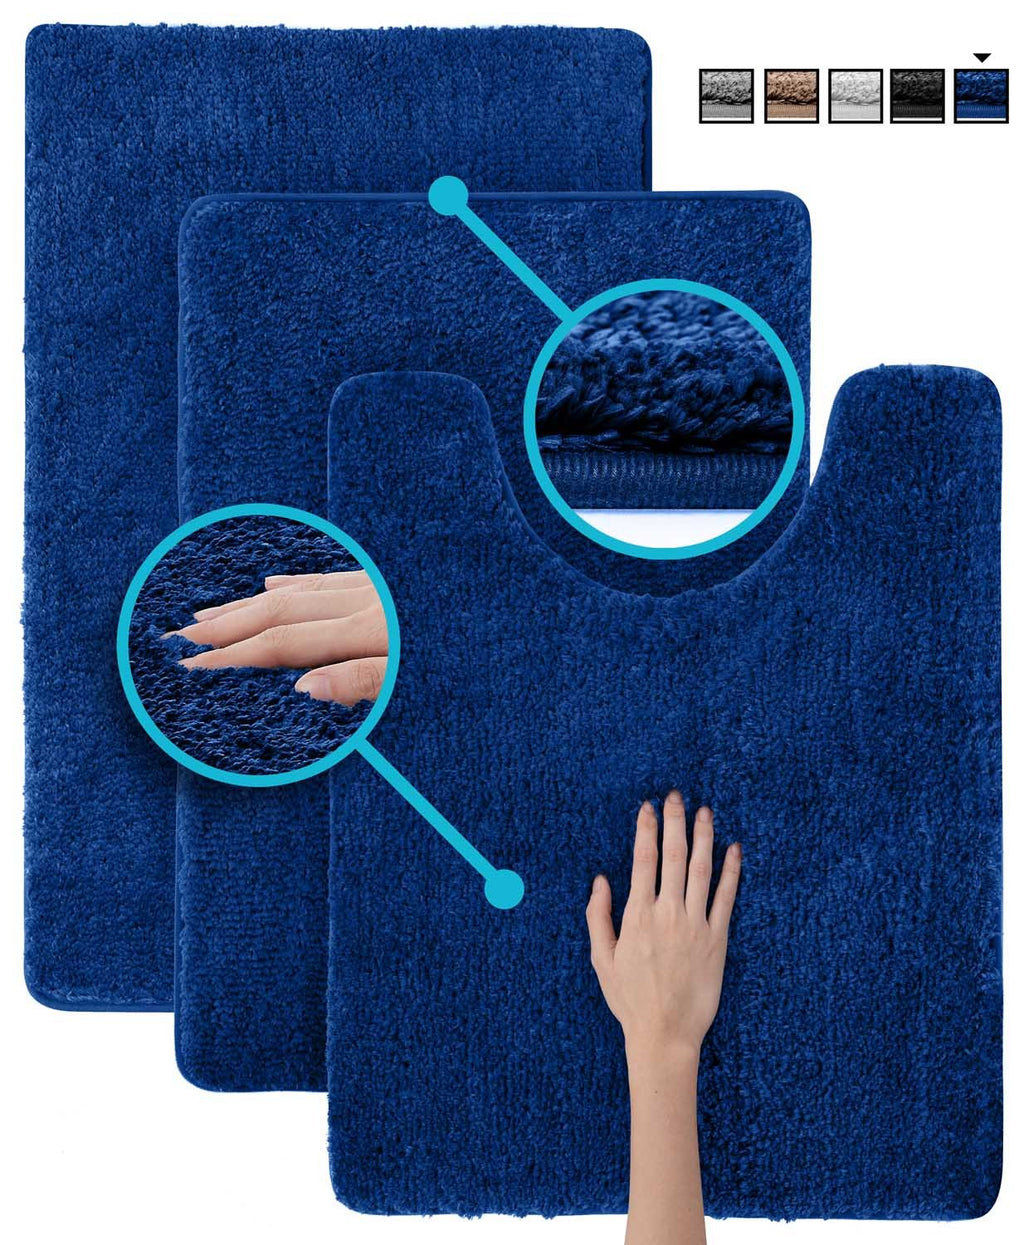 3 pc Set Luxuriously Plush Microfiber Bathroom Rugs